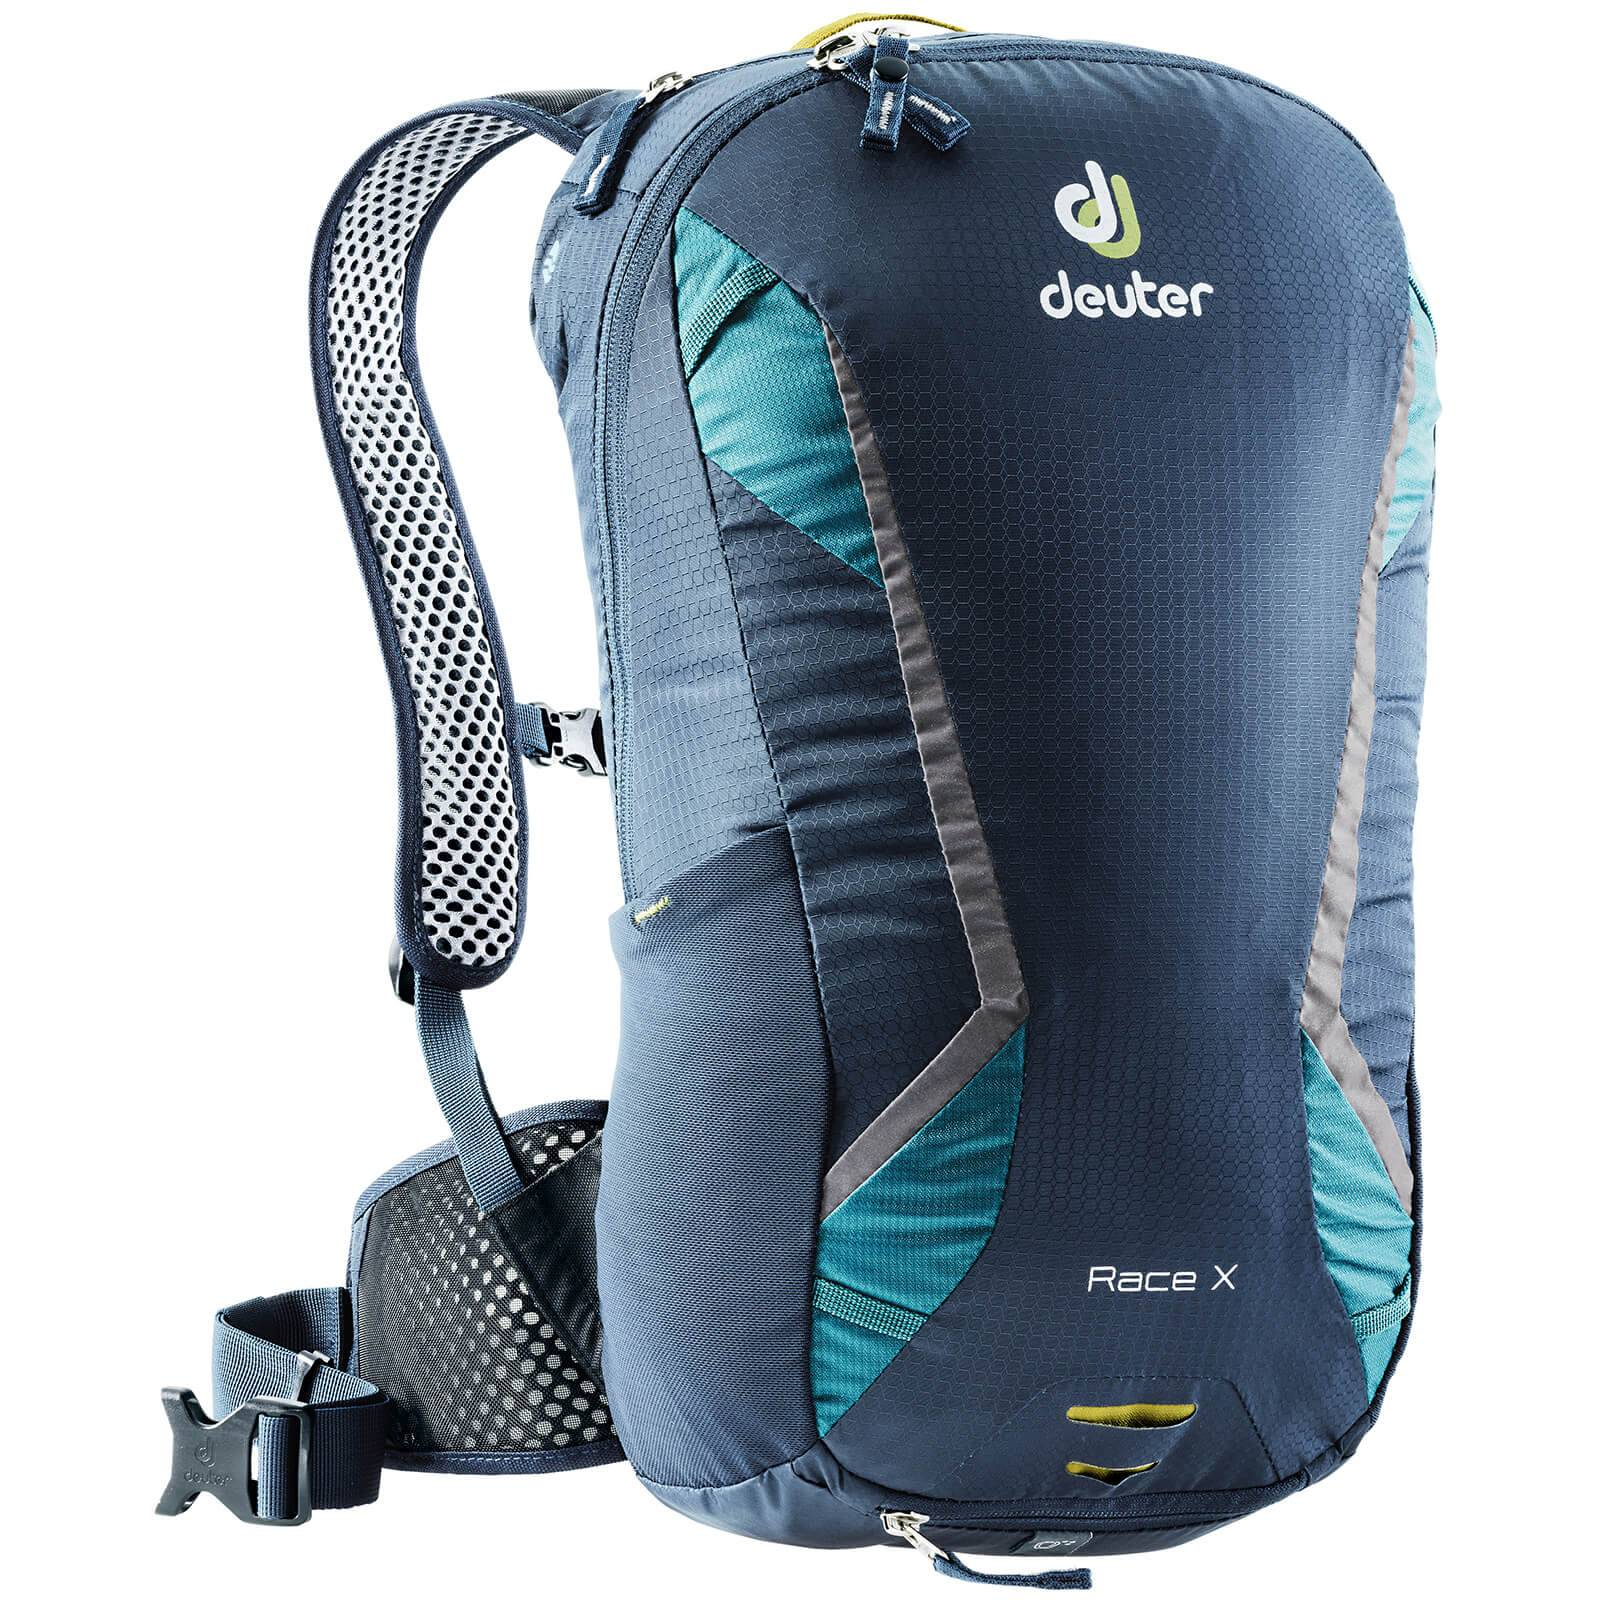 Deuter Race X 12L Backpack - Navy/Denim